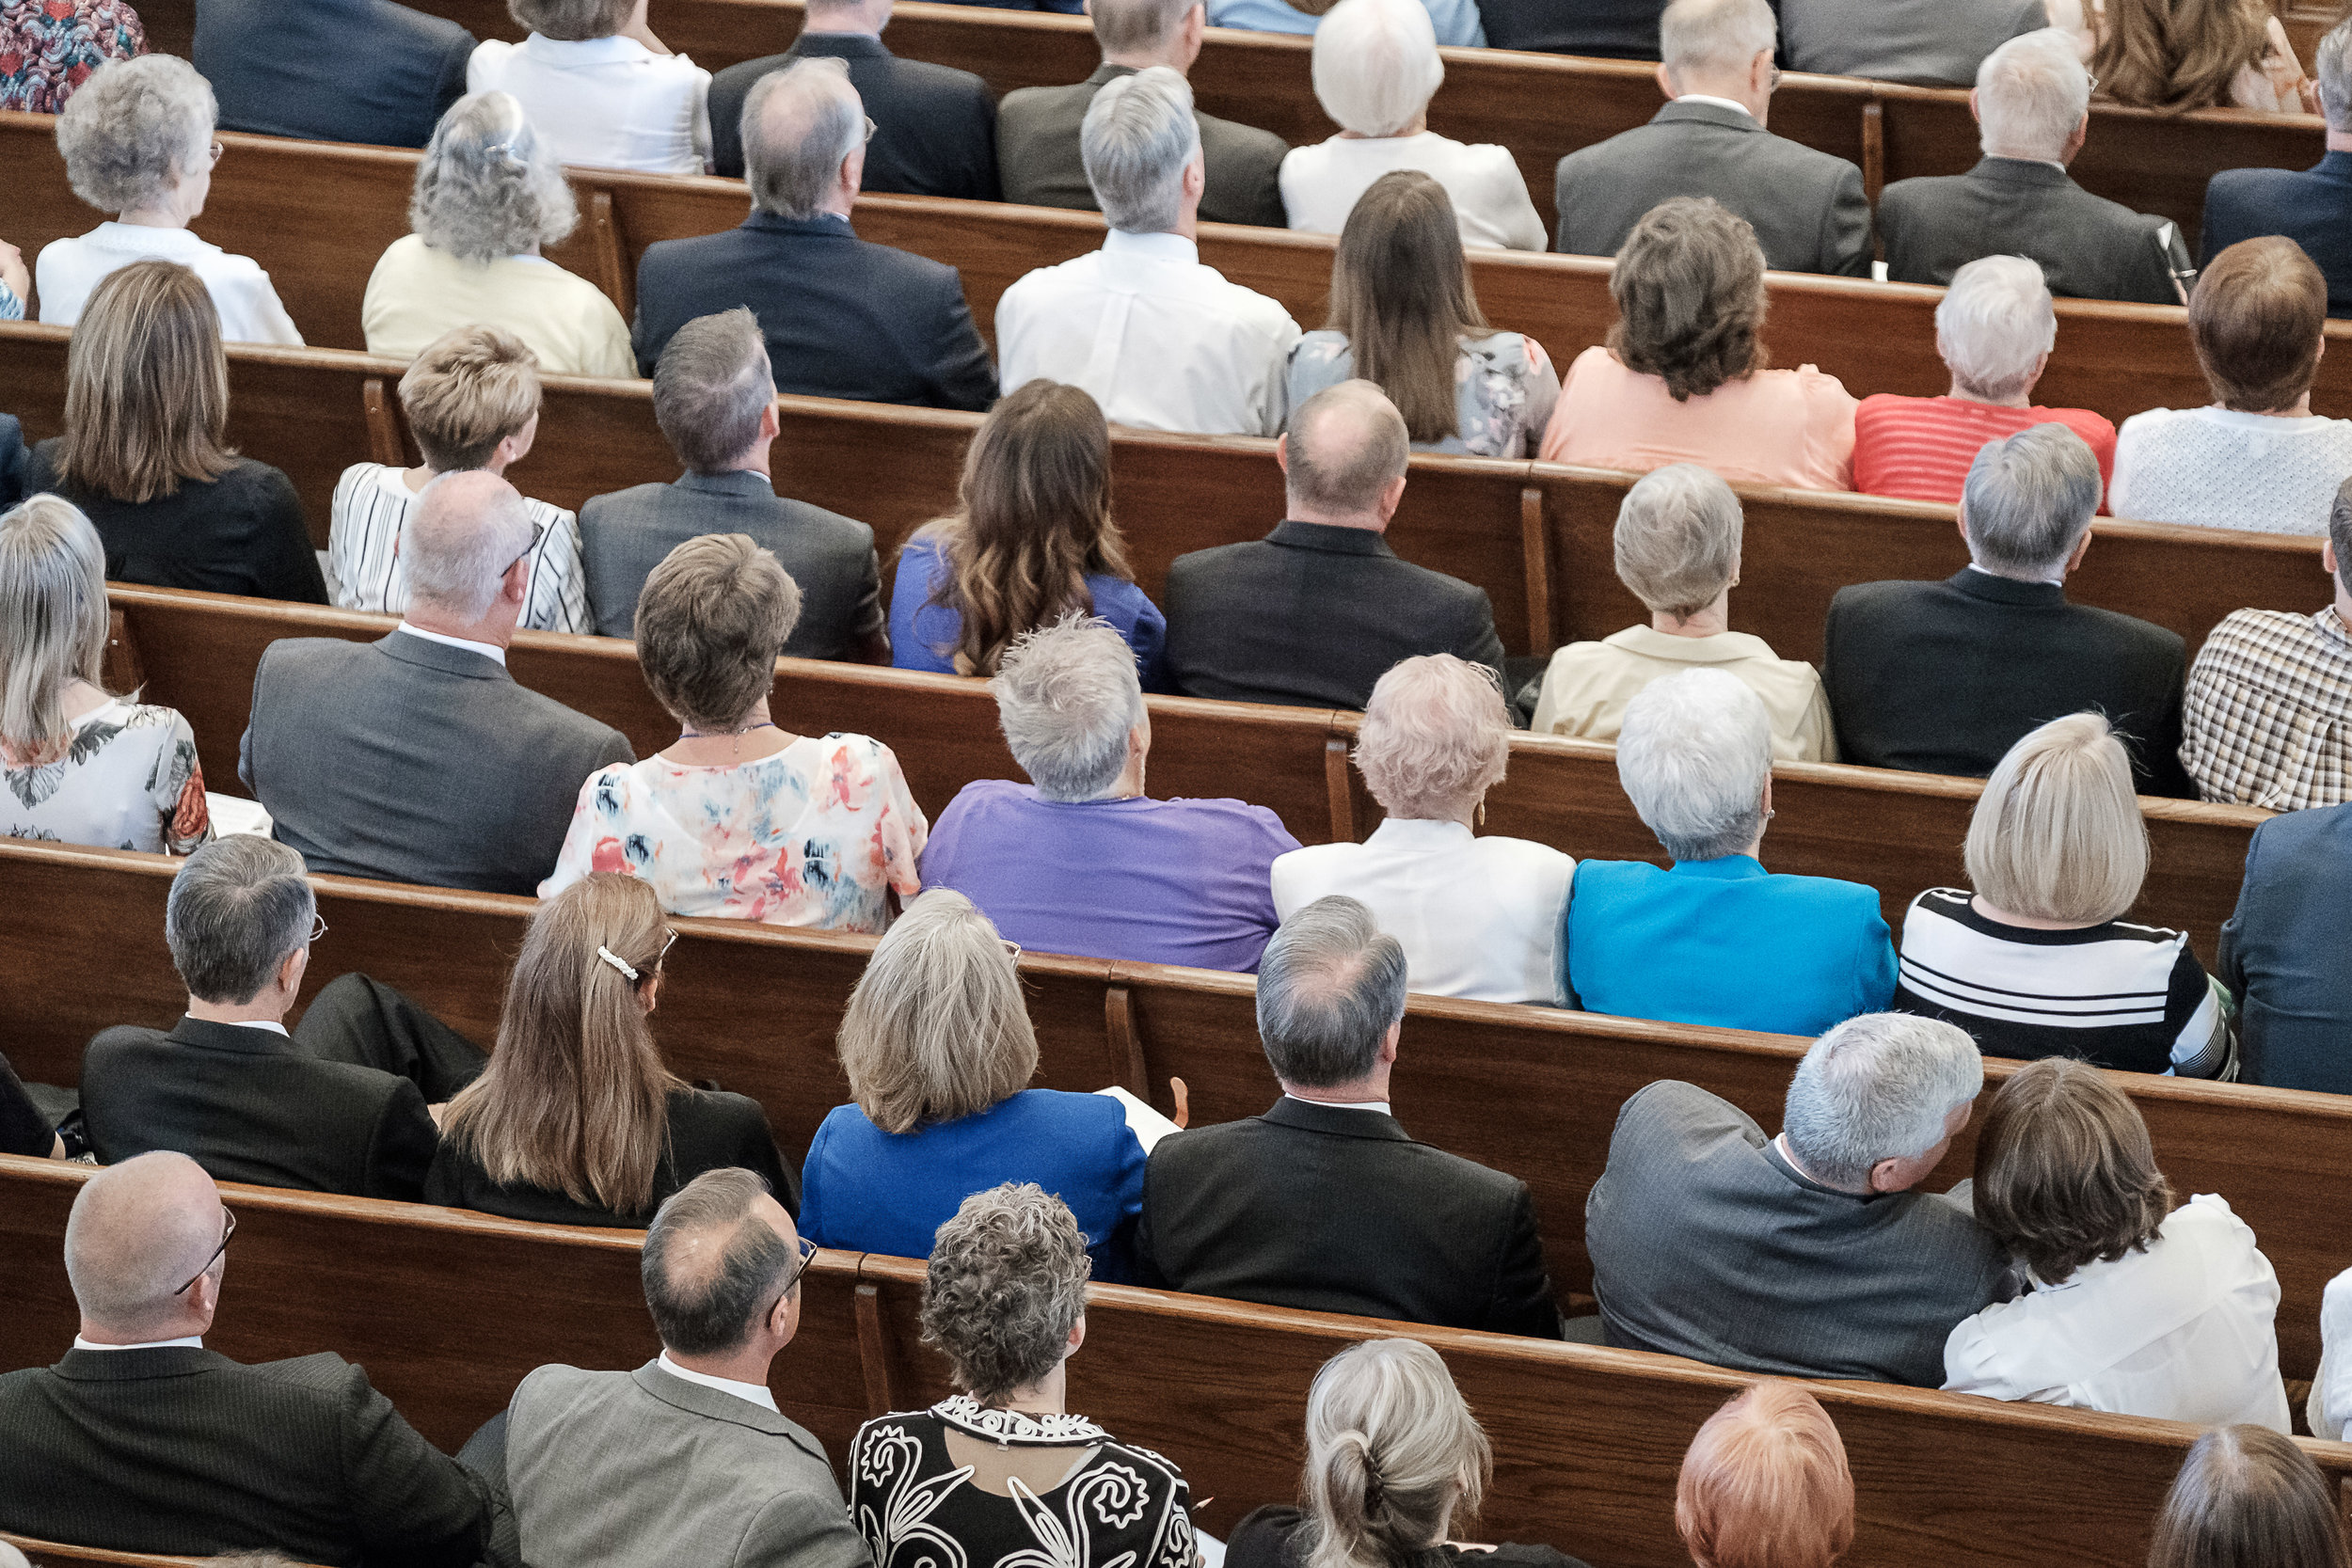 St. George Tabernacle Re-Dedication for the Deseret News